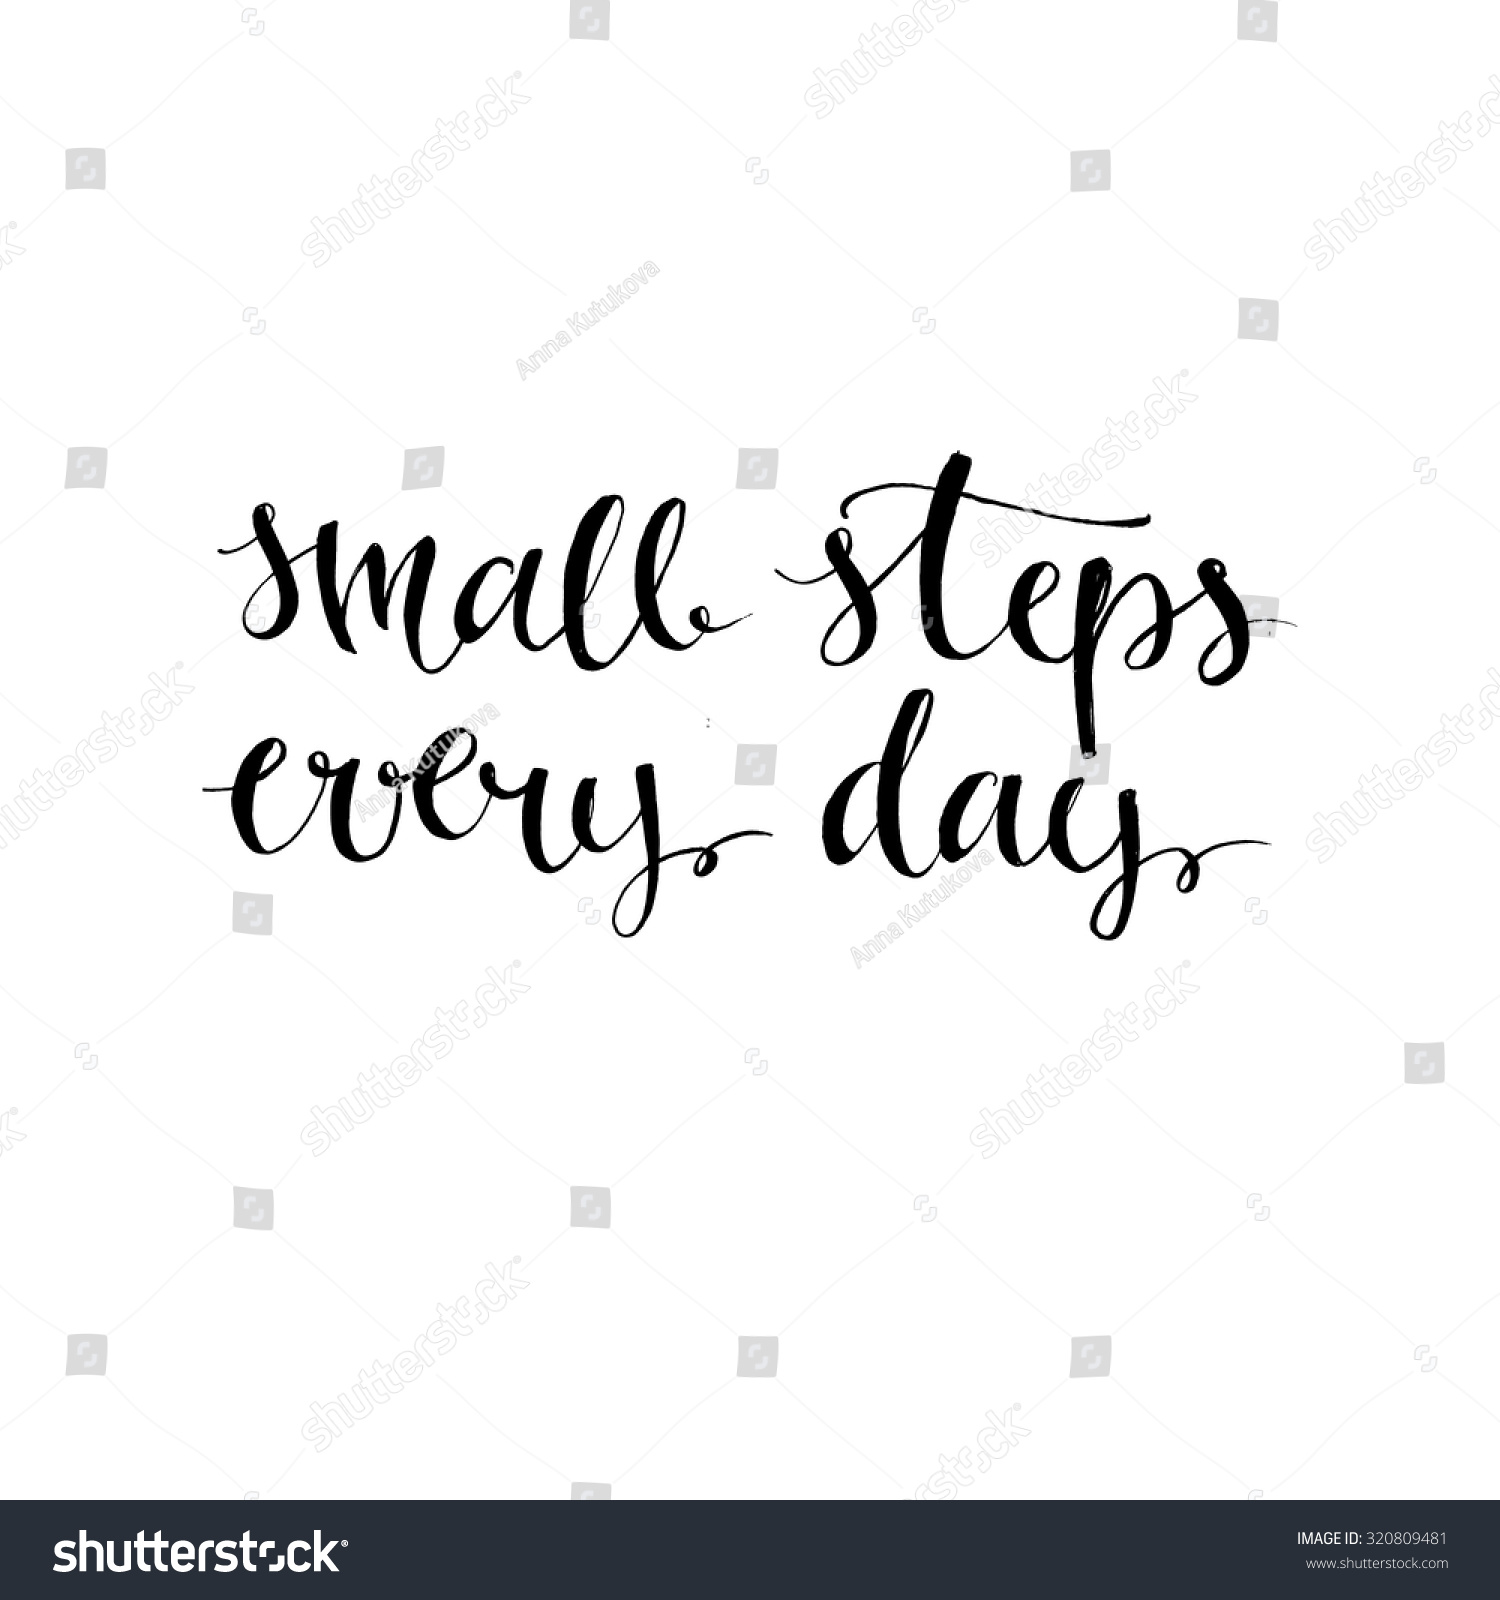 Small Steps Every Day Black Motivational Stock Vector